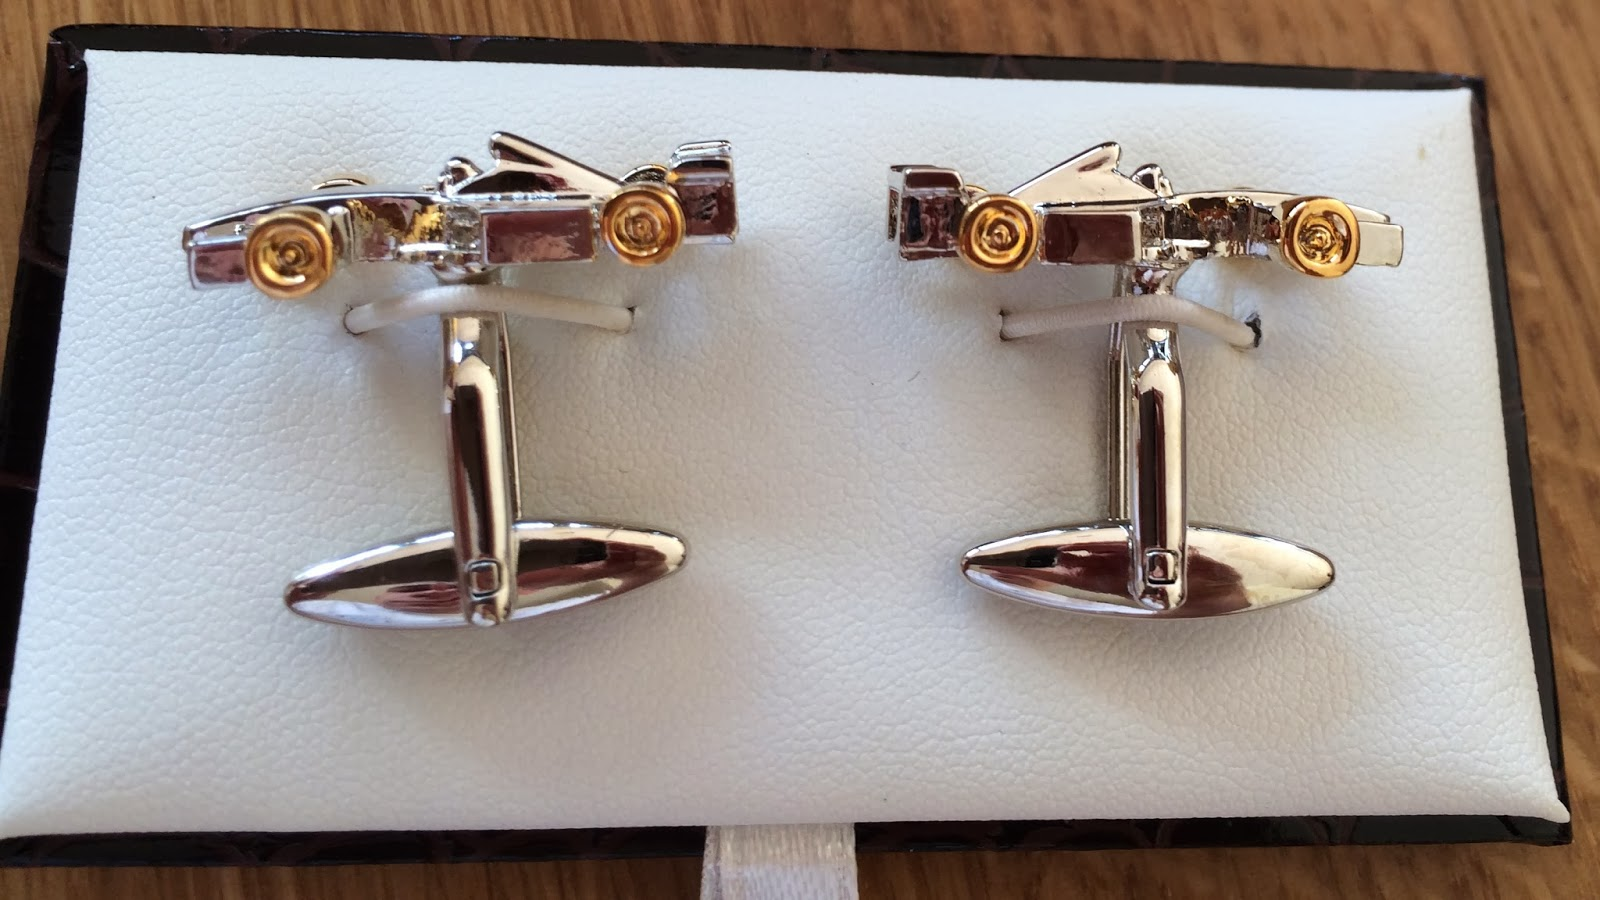 F1 Car Cufflinks - a must for any car enthusiast